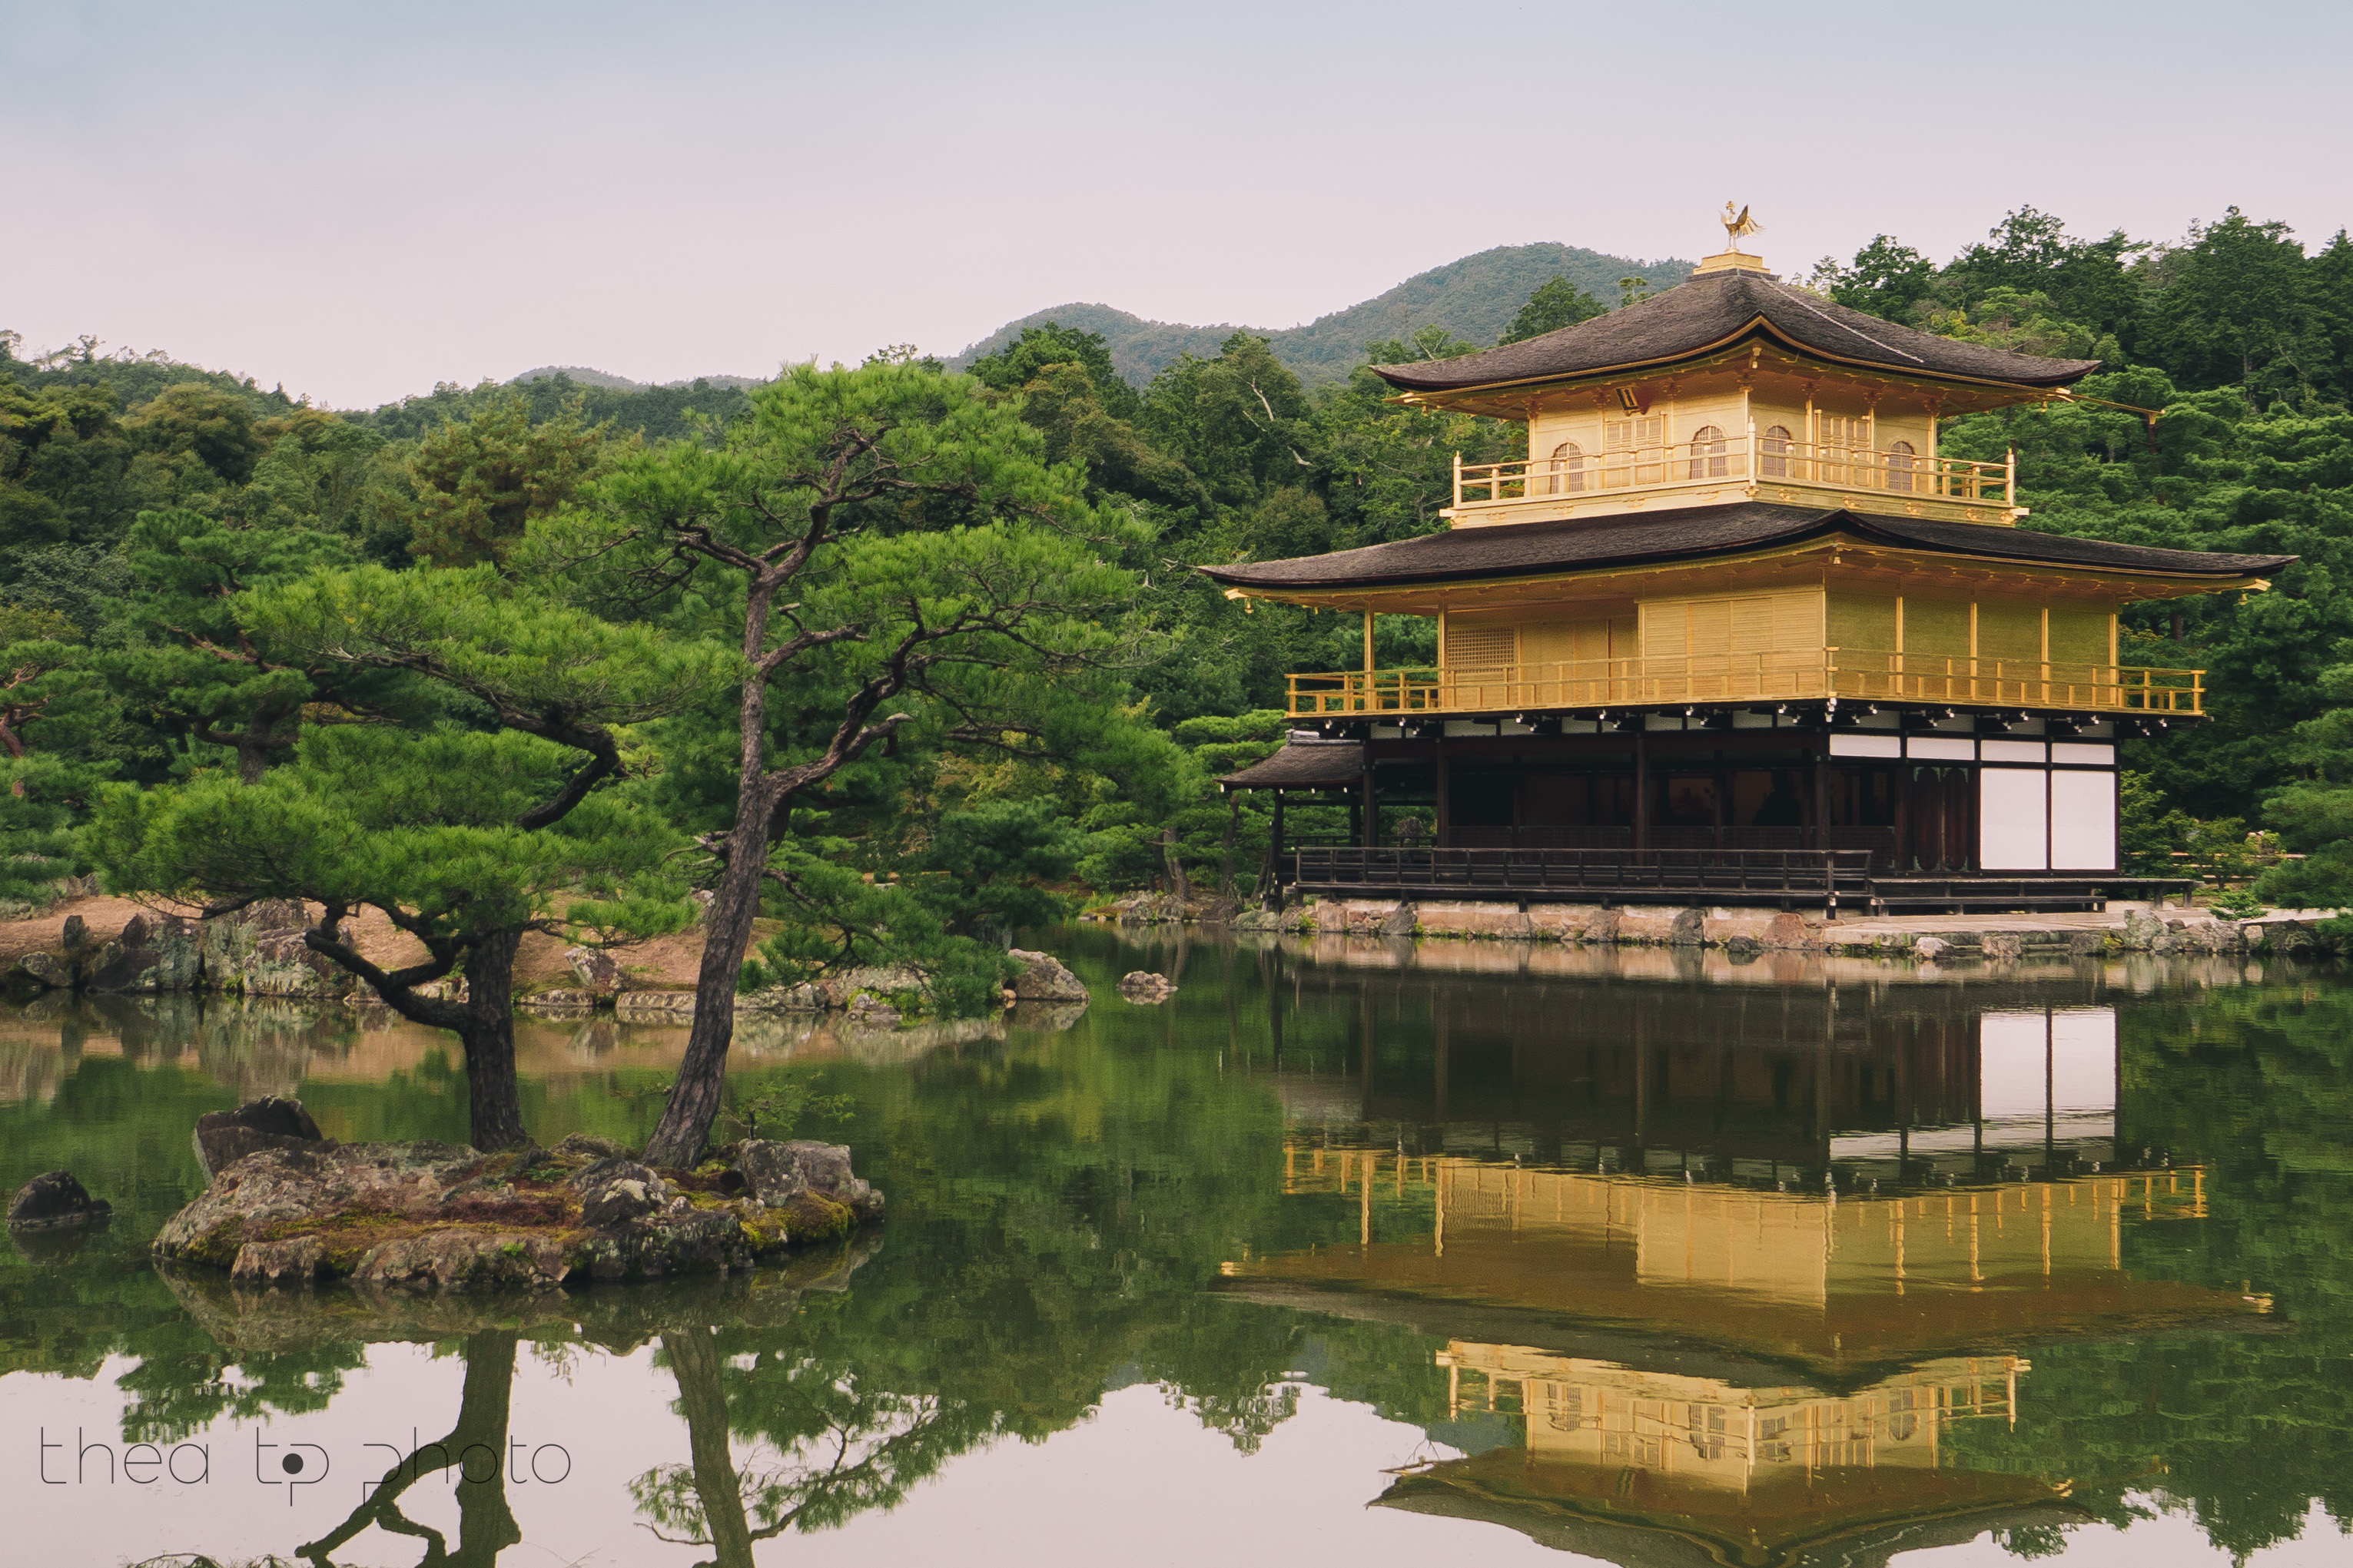 The Golden Temple, a must visit when in Kyoto